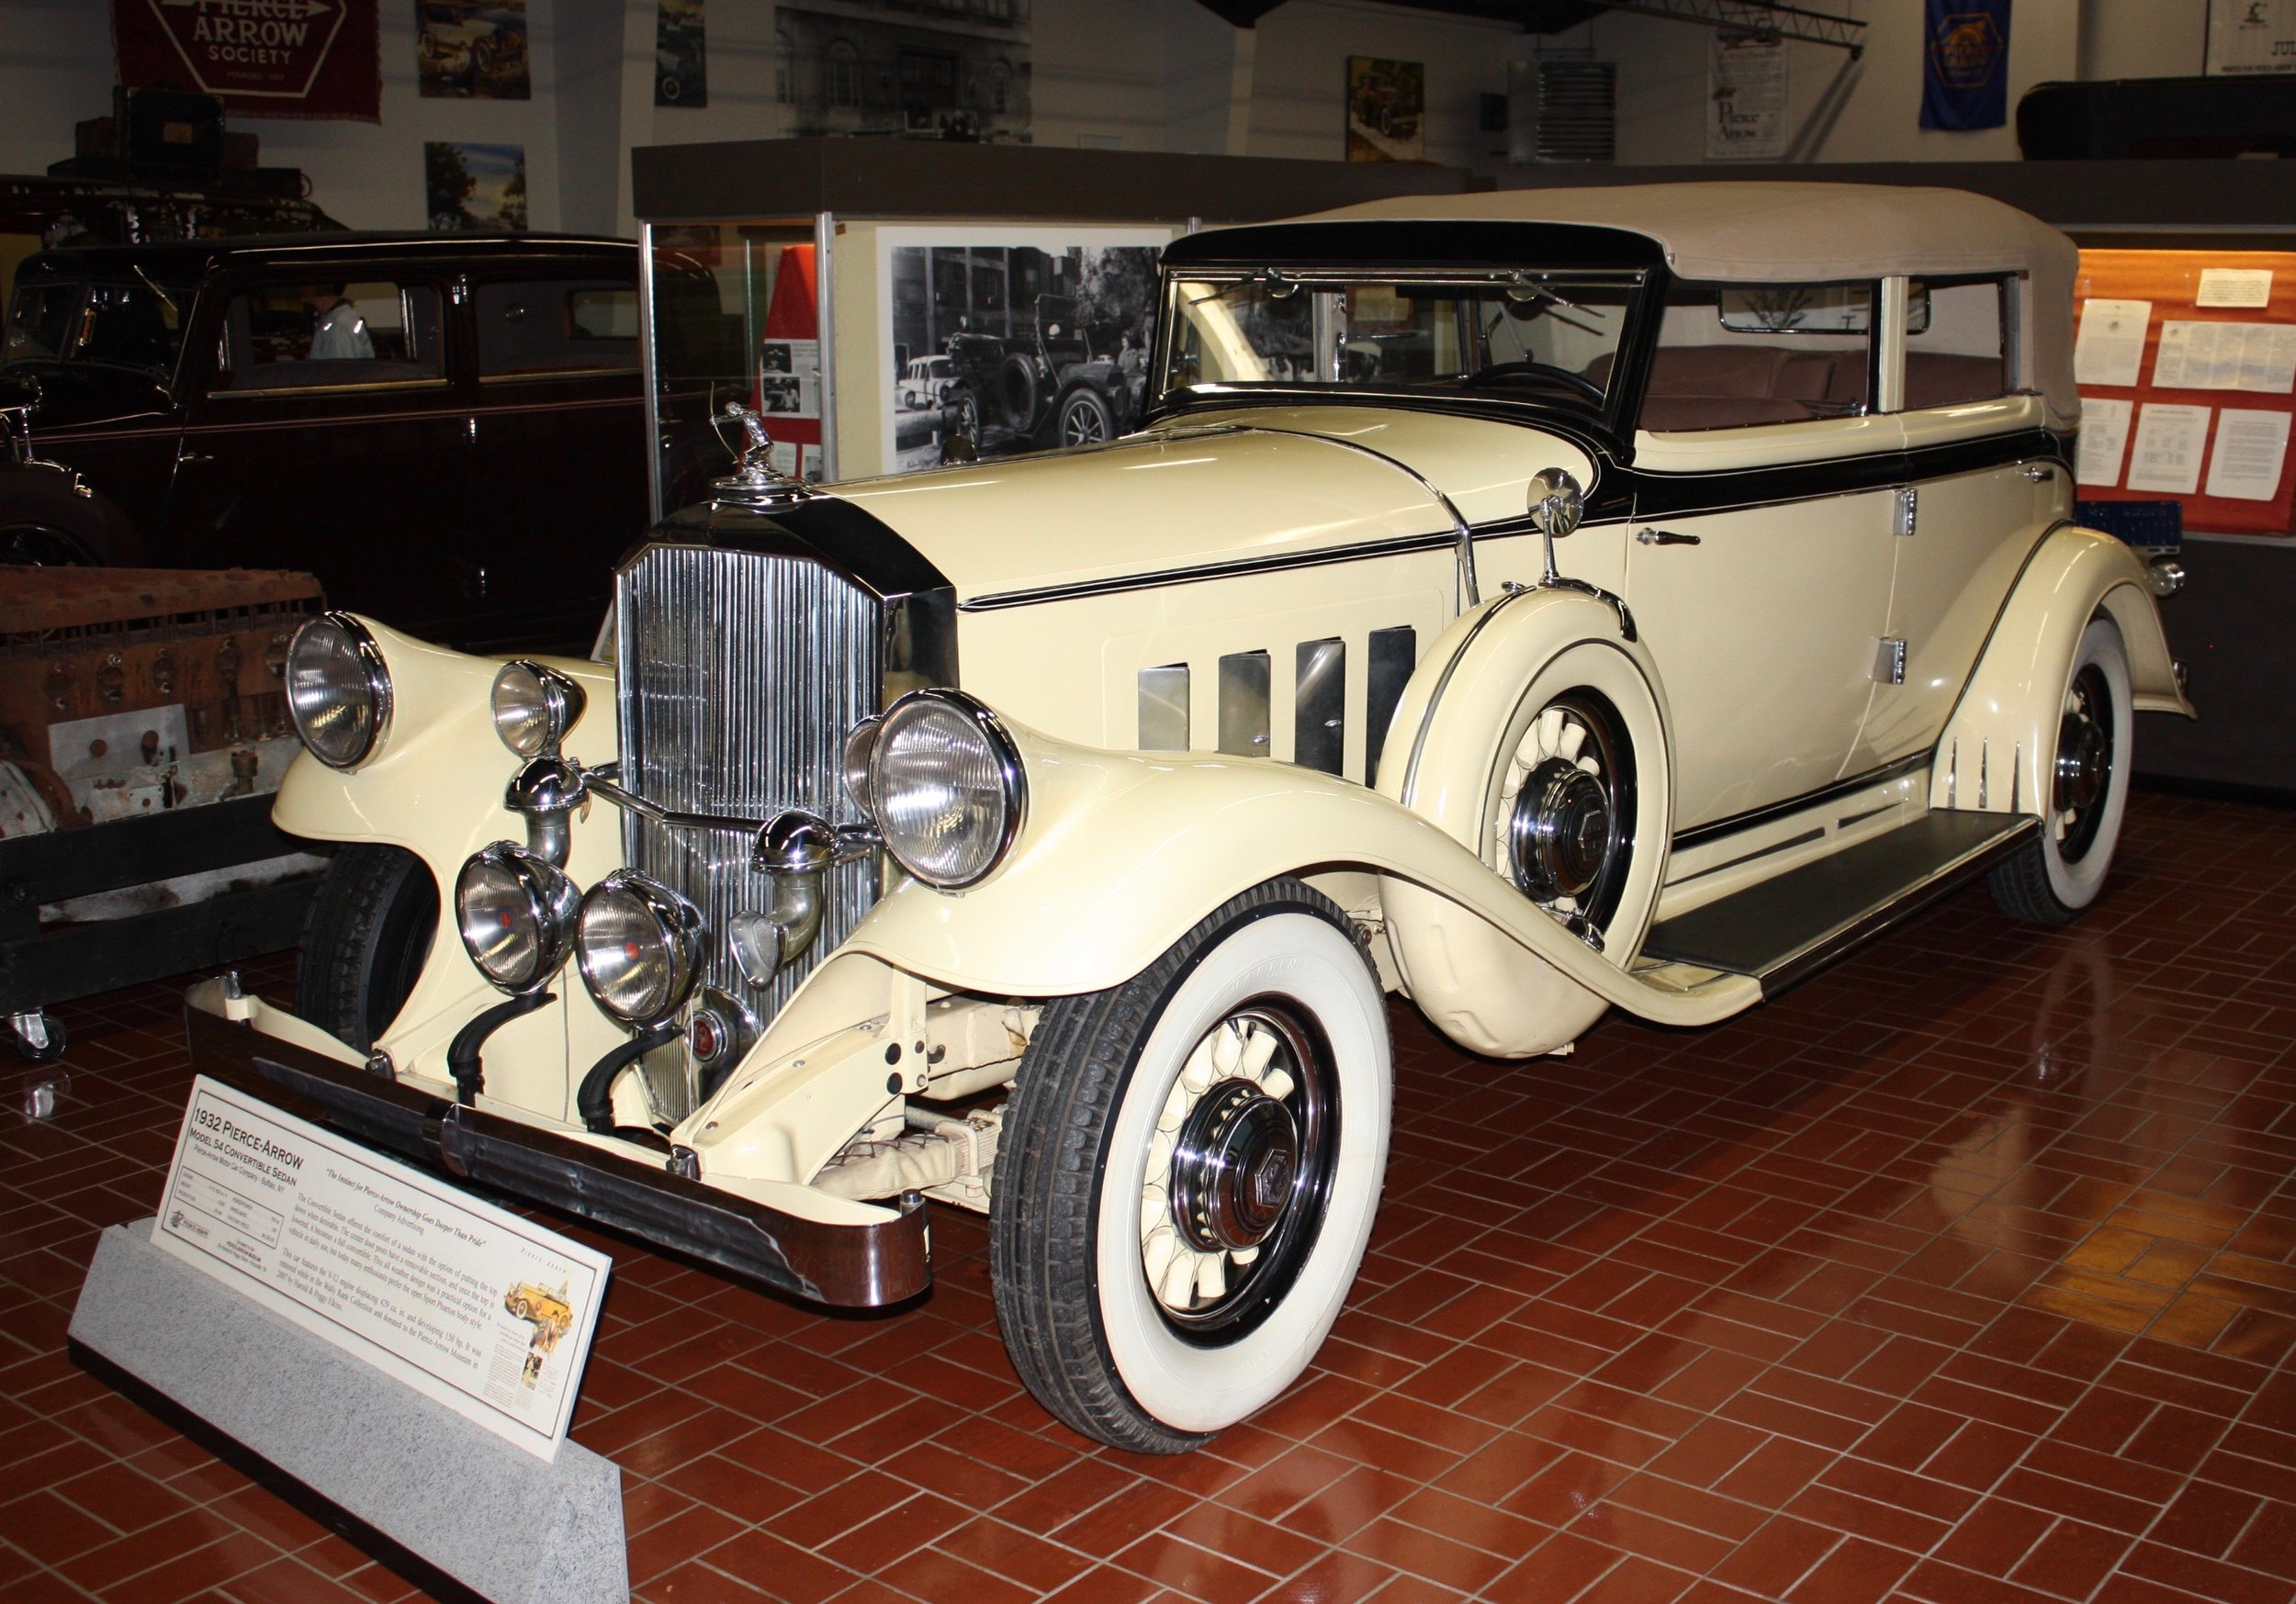 A 1932 Pierce Arrow Model 54 at the Gilmore Museum in Hickory Corners Michigan